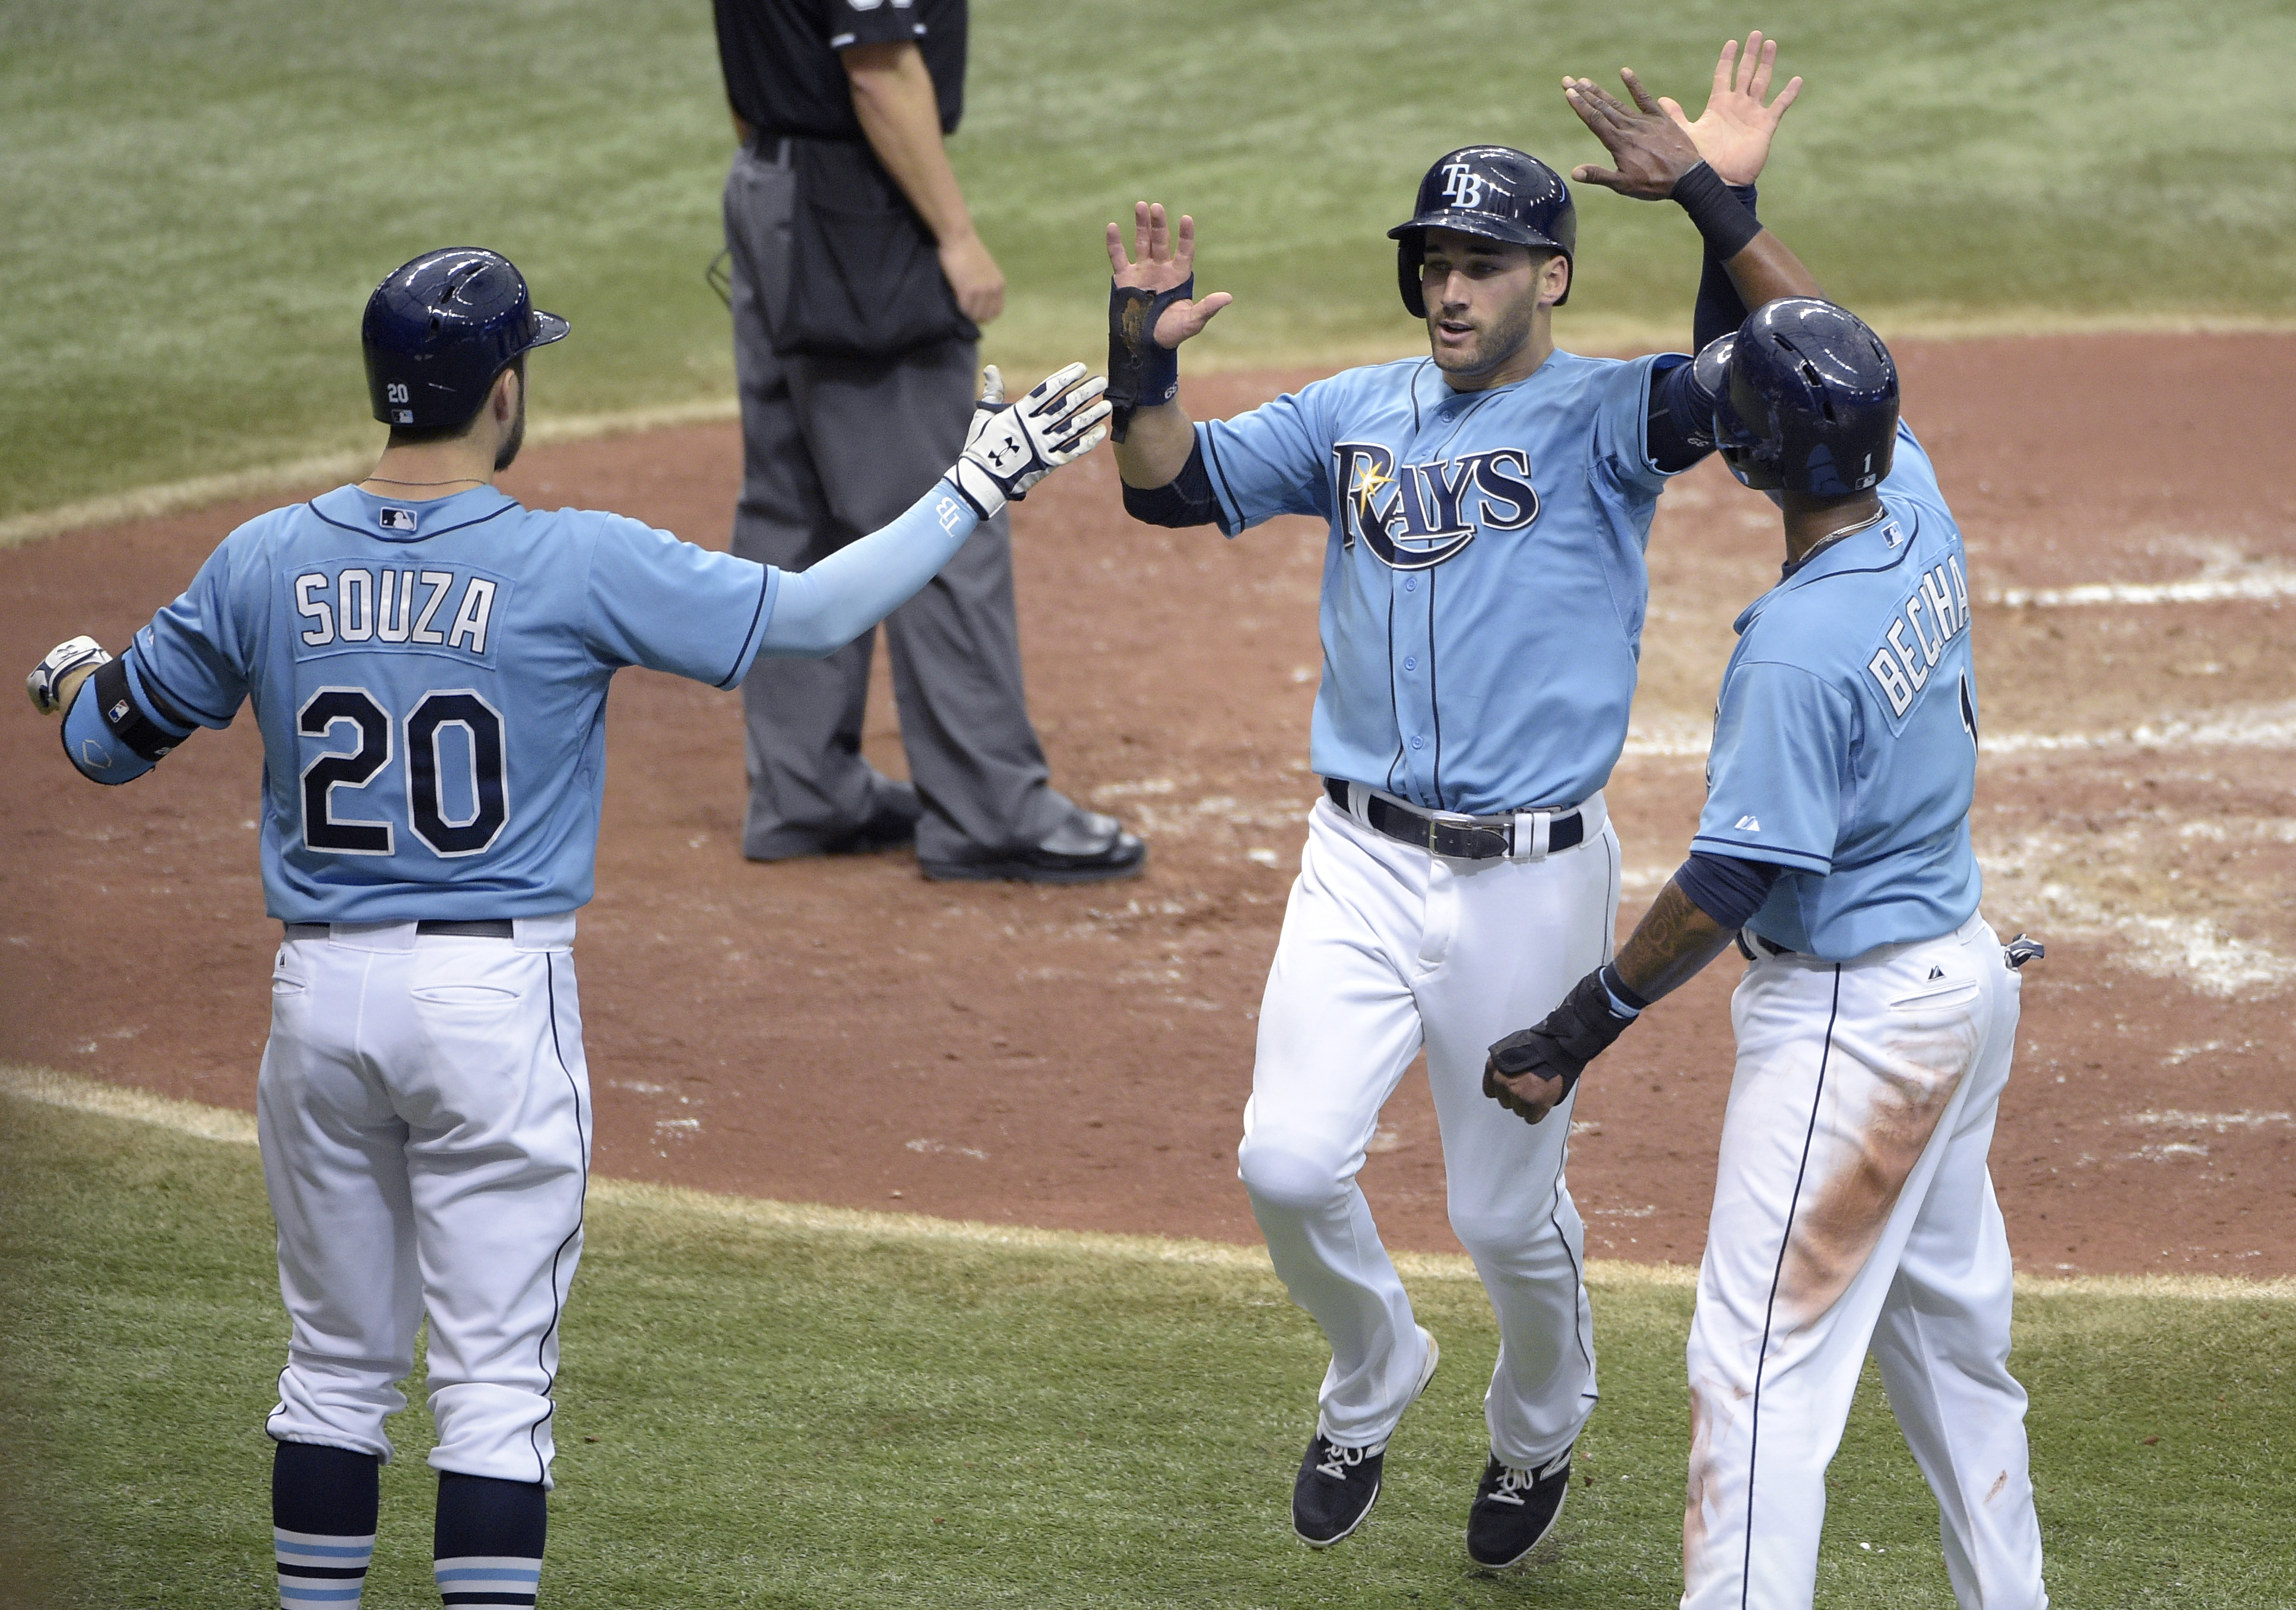 Tampa Bay Rays' Kevin Kiermaier, center, is congratulated by Steven Souza Jr. (20) and Tim Beckham, right, after scoring off a single by Brandon Guyer during the sixth inning of a baseball game against the Toronto Blue Jays in St. Petersburg, Fla., Sunday